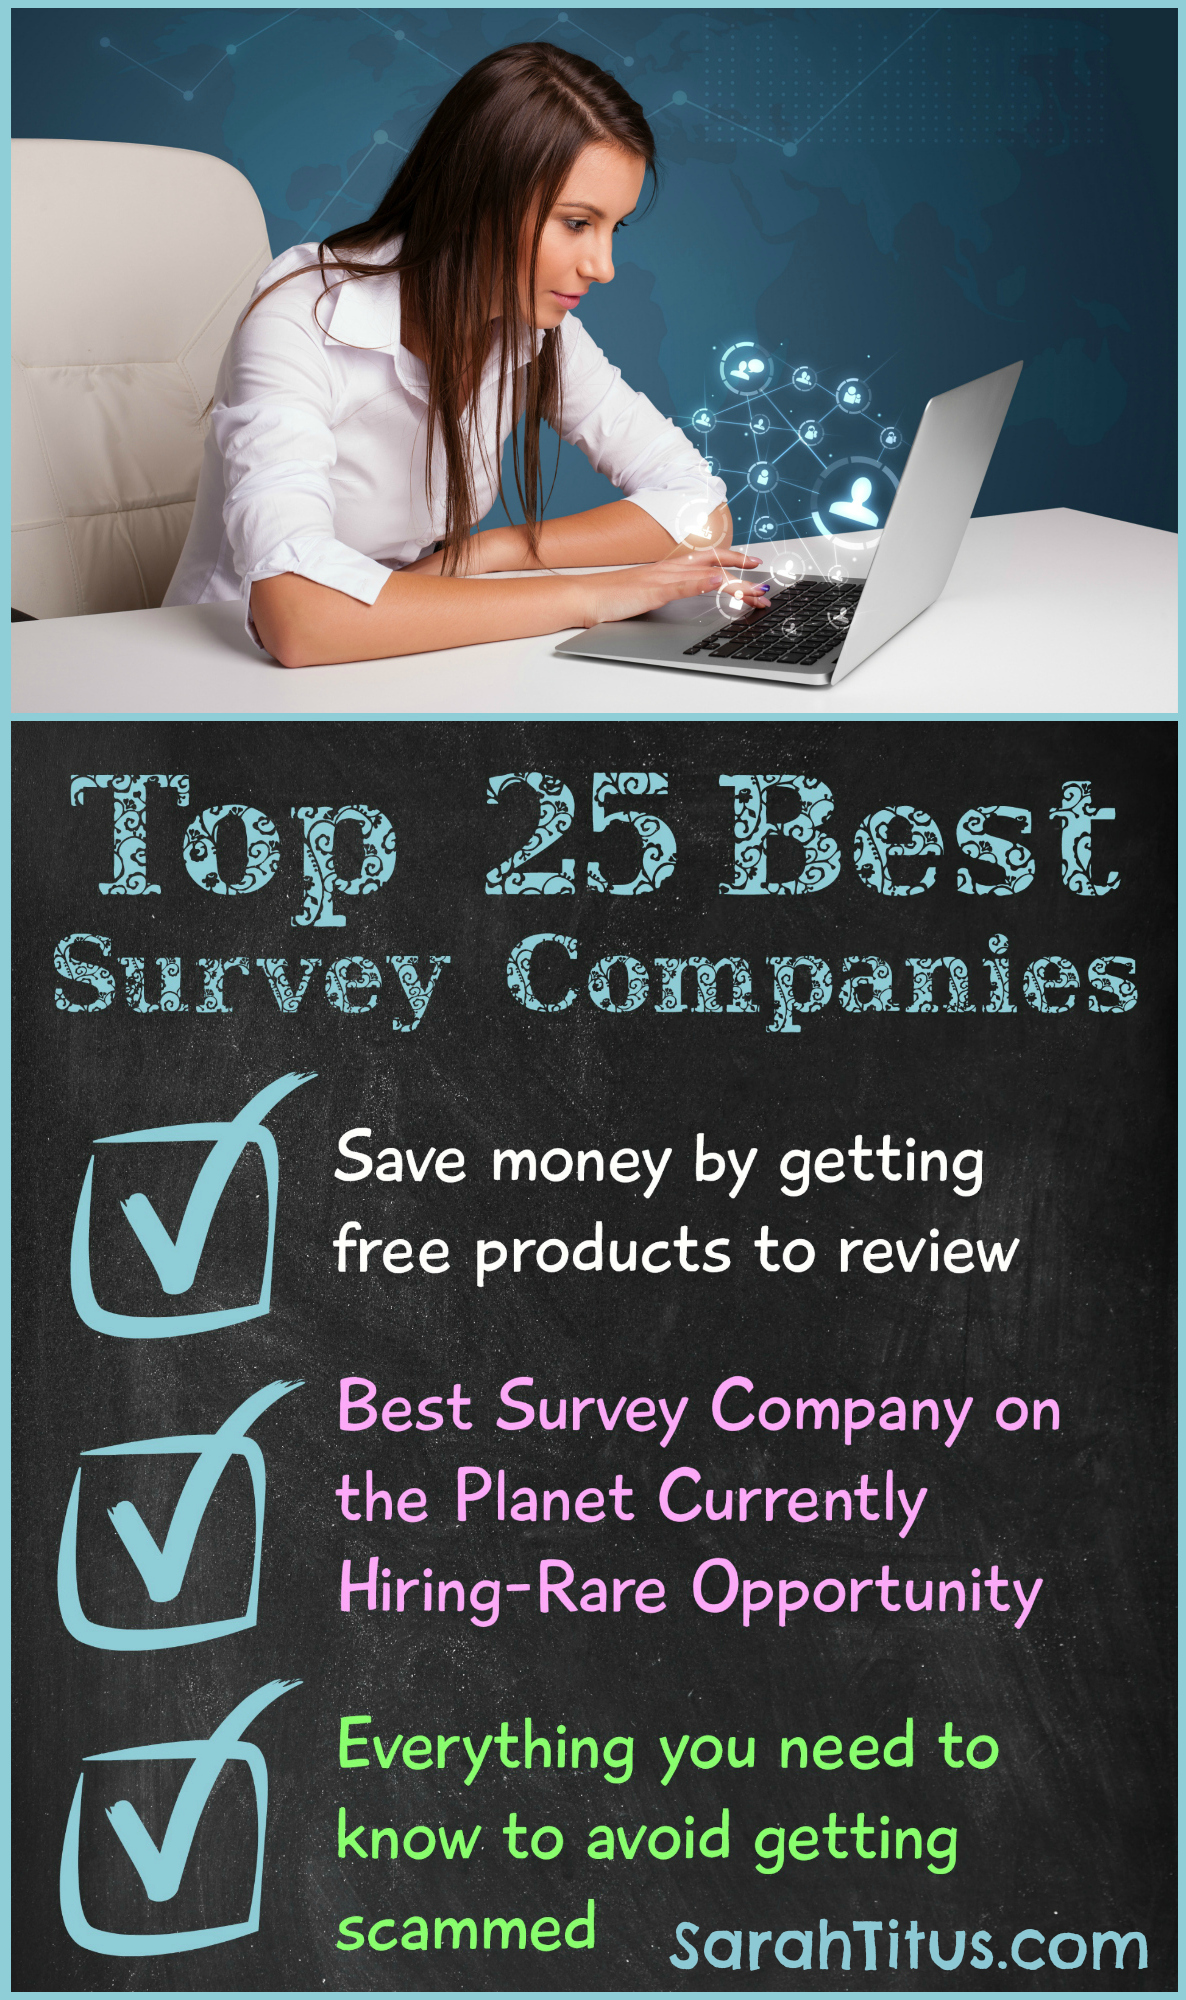 Best 25 Models Ideas On Pinterest: Top 25 Best Survey Companies